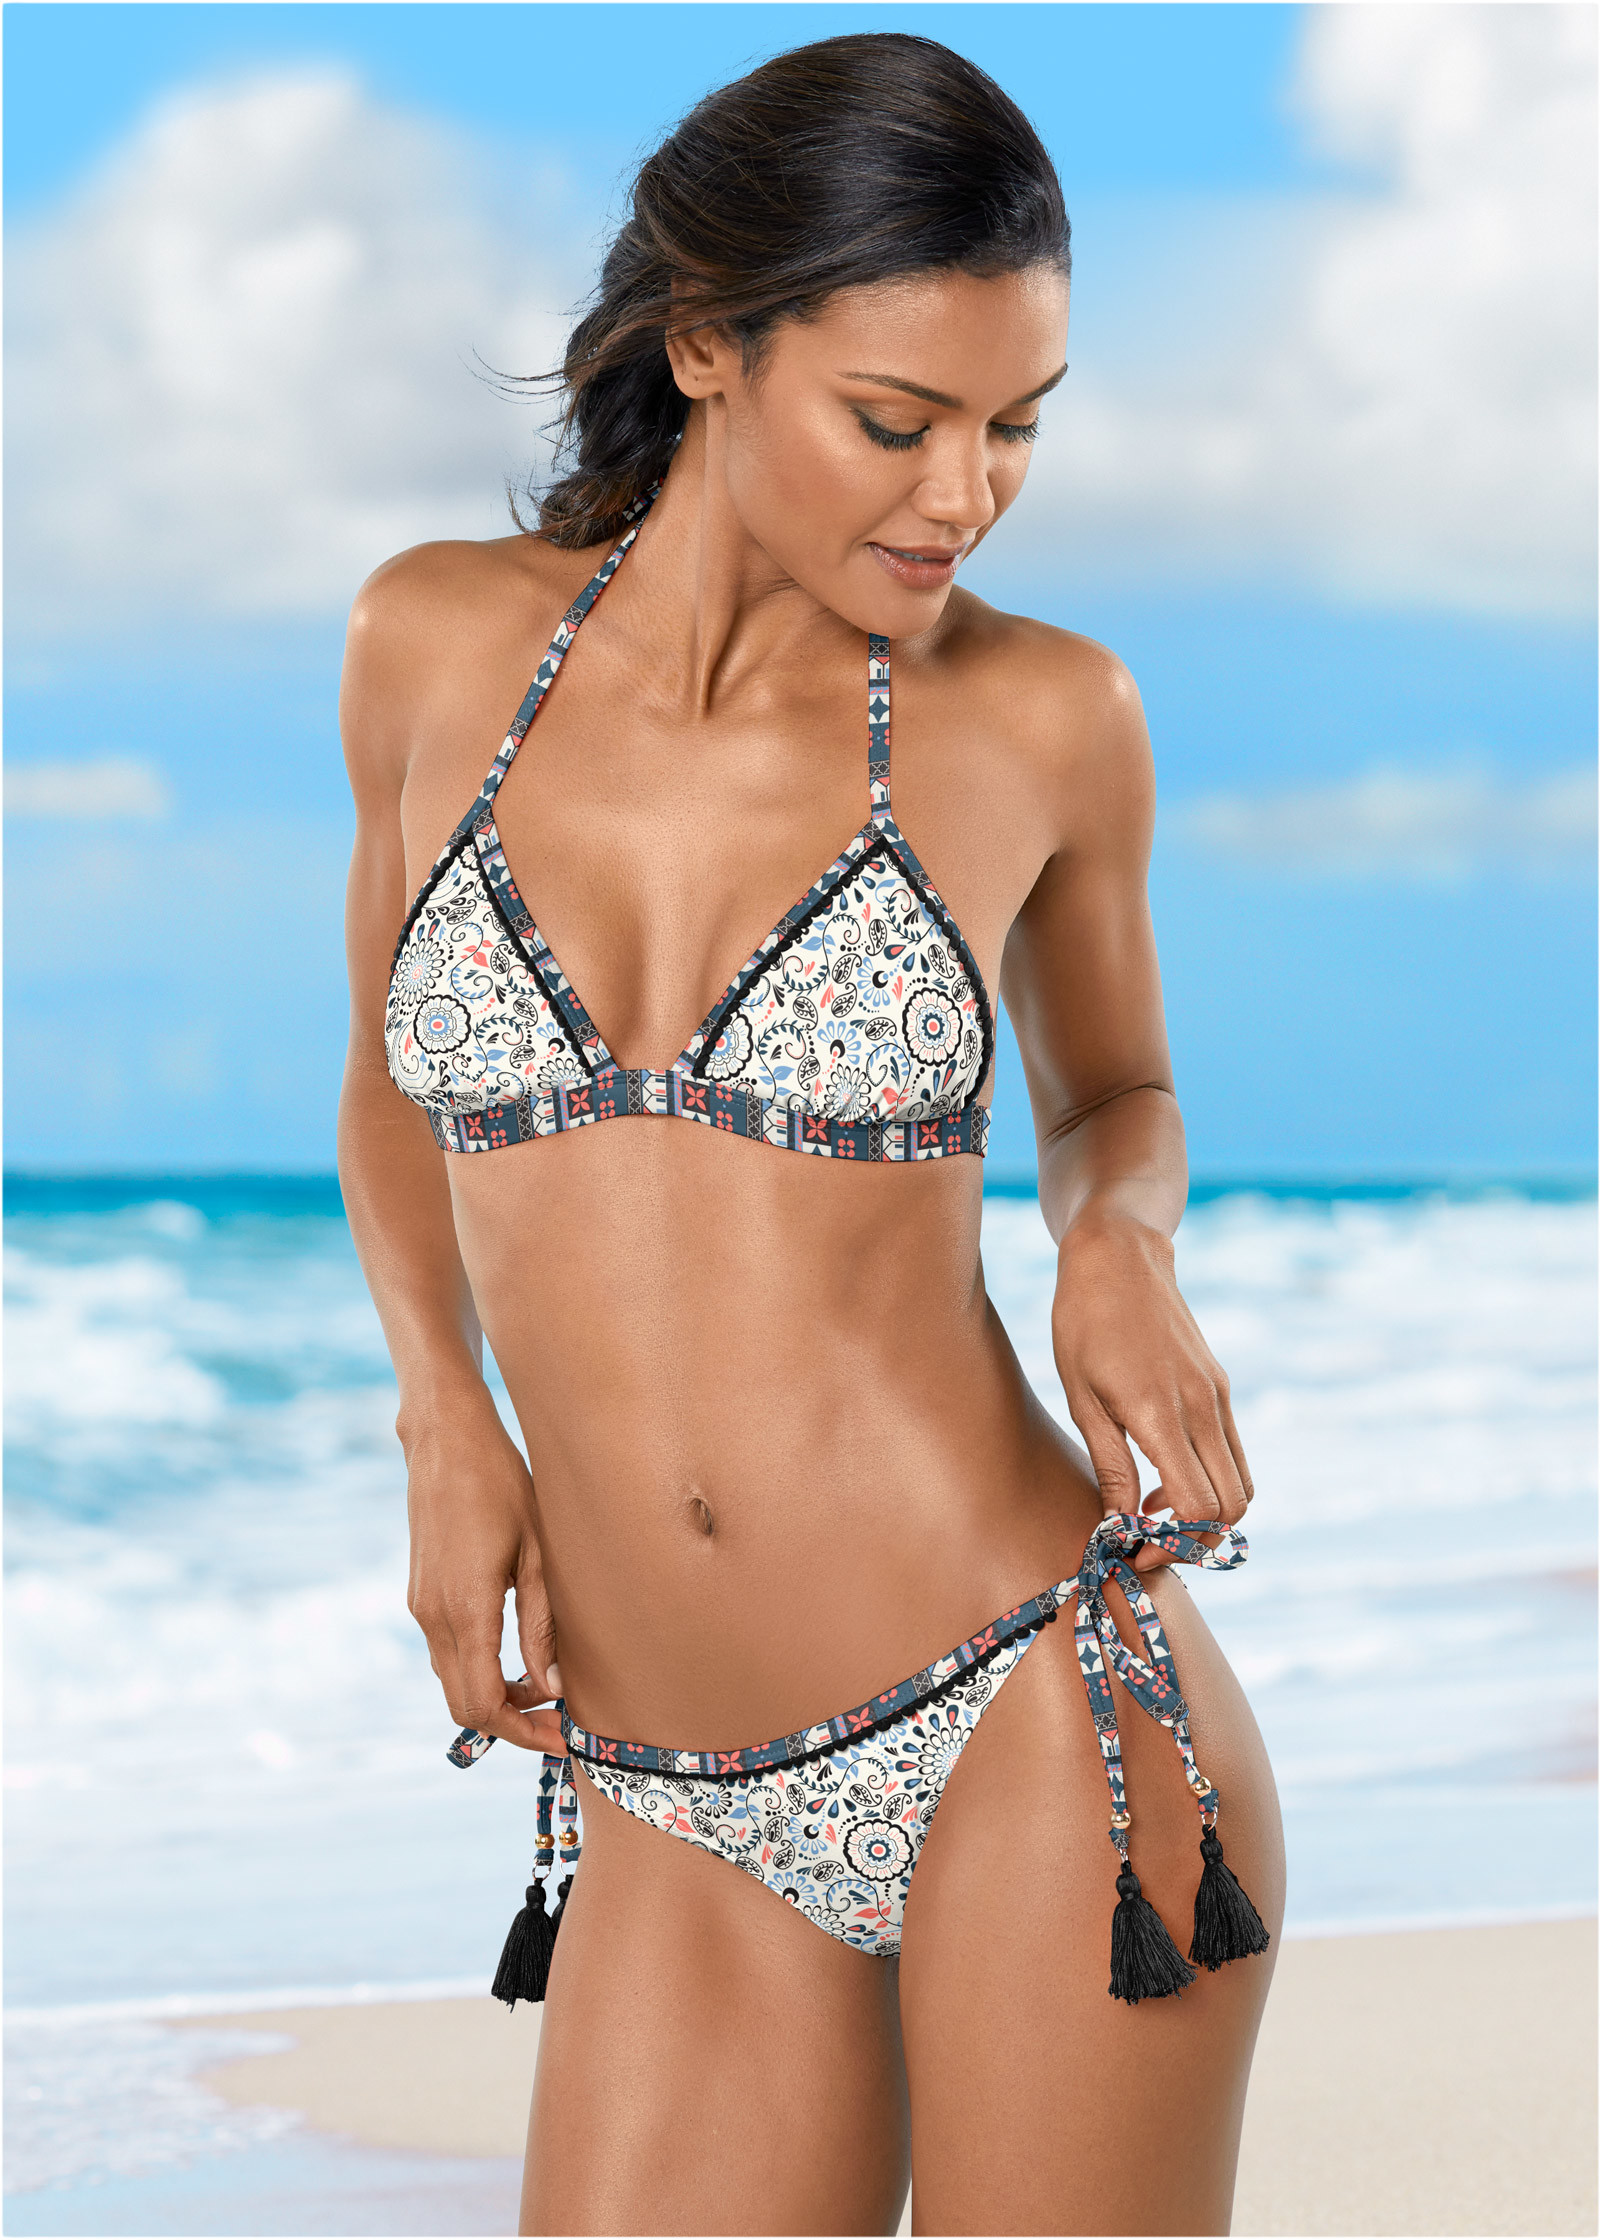 mom-with-bikinis-that-are-painted-ontures